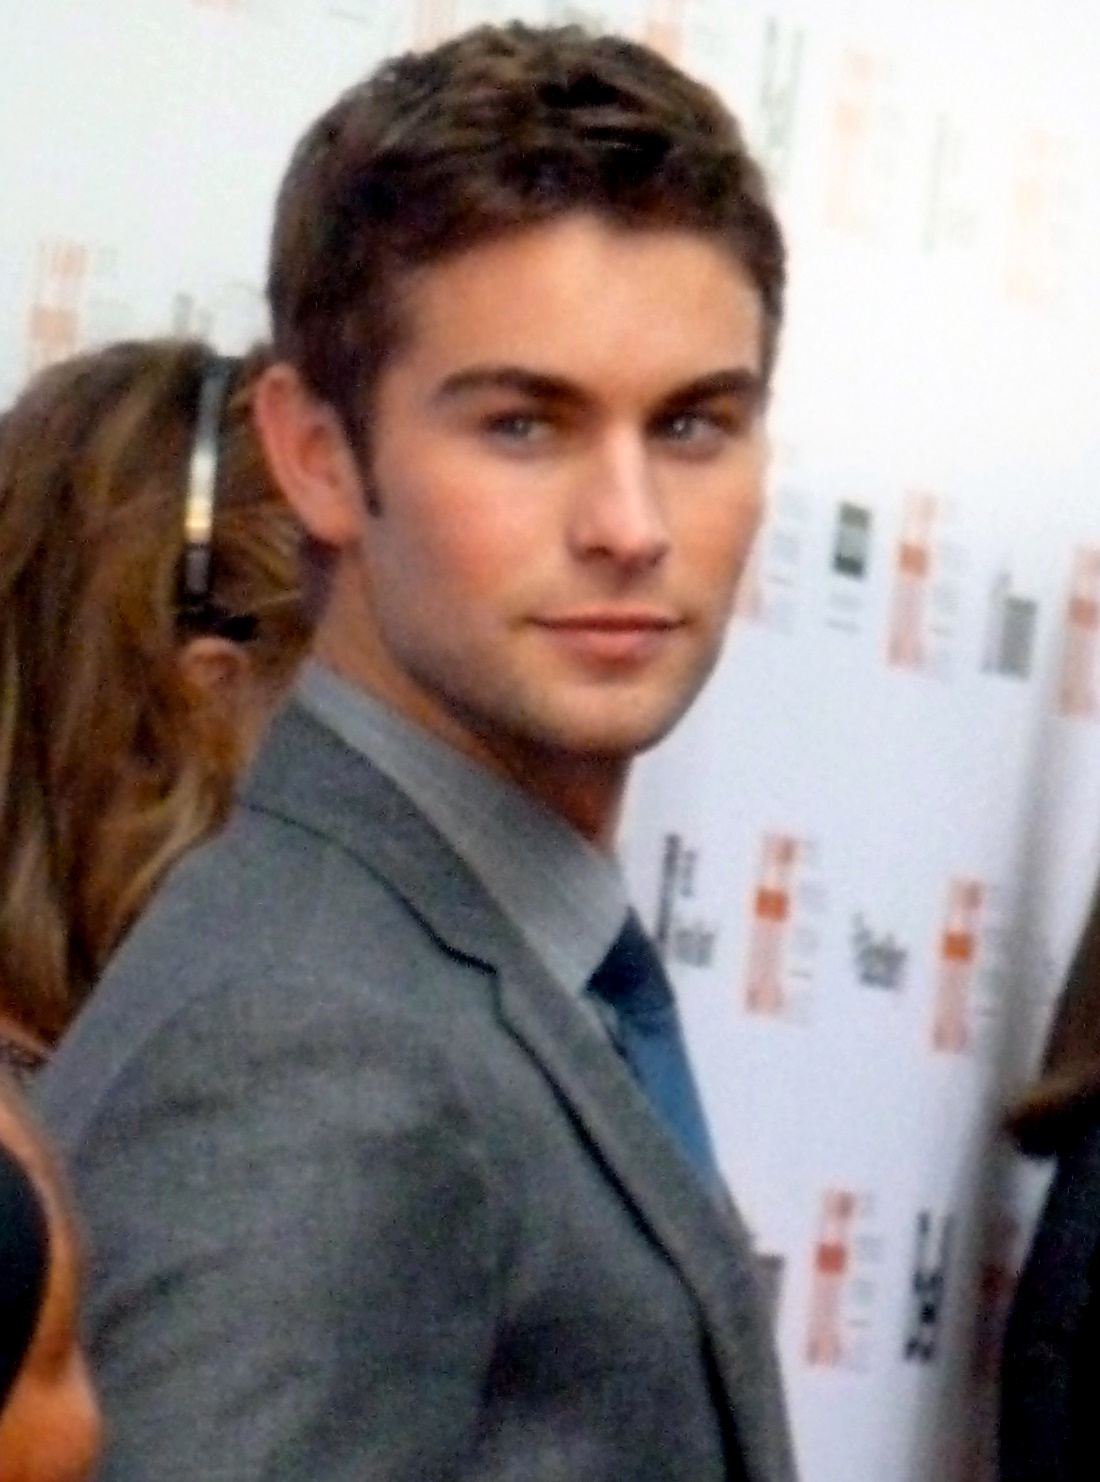 chace crawford marriedchace crawford age, chace crawford 2015, chace crawford height, chace crawford sister, chace crawford movies, chace crawford net worth, chace crawford new show, chace crawford wife, chace crawford imdb, chace crawford twitter, chace crawford parents, chace crawford and taylor momsen, chace crawford glee, chace crawford tumblr, chace crawford family, chace crawford utah, chace crawford interview, chace crawford dating history, chace crawford married